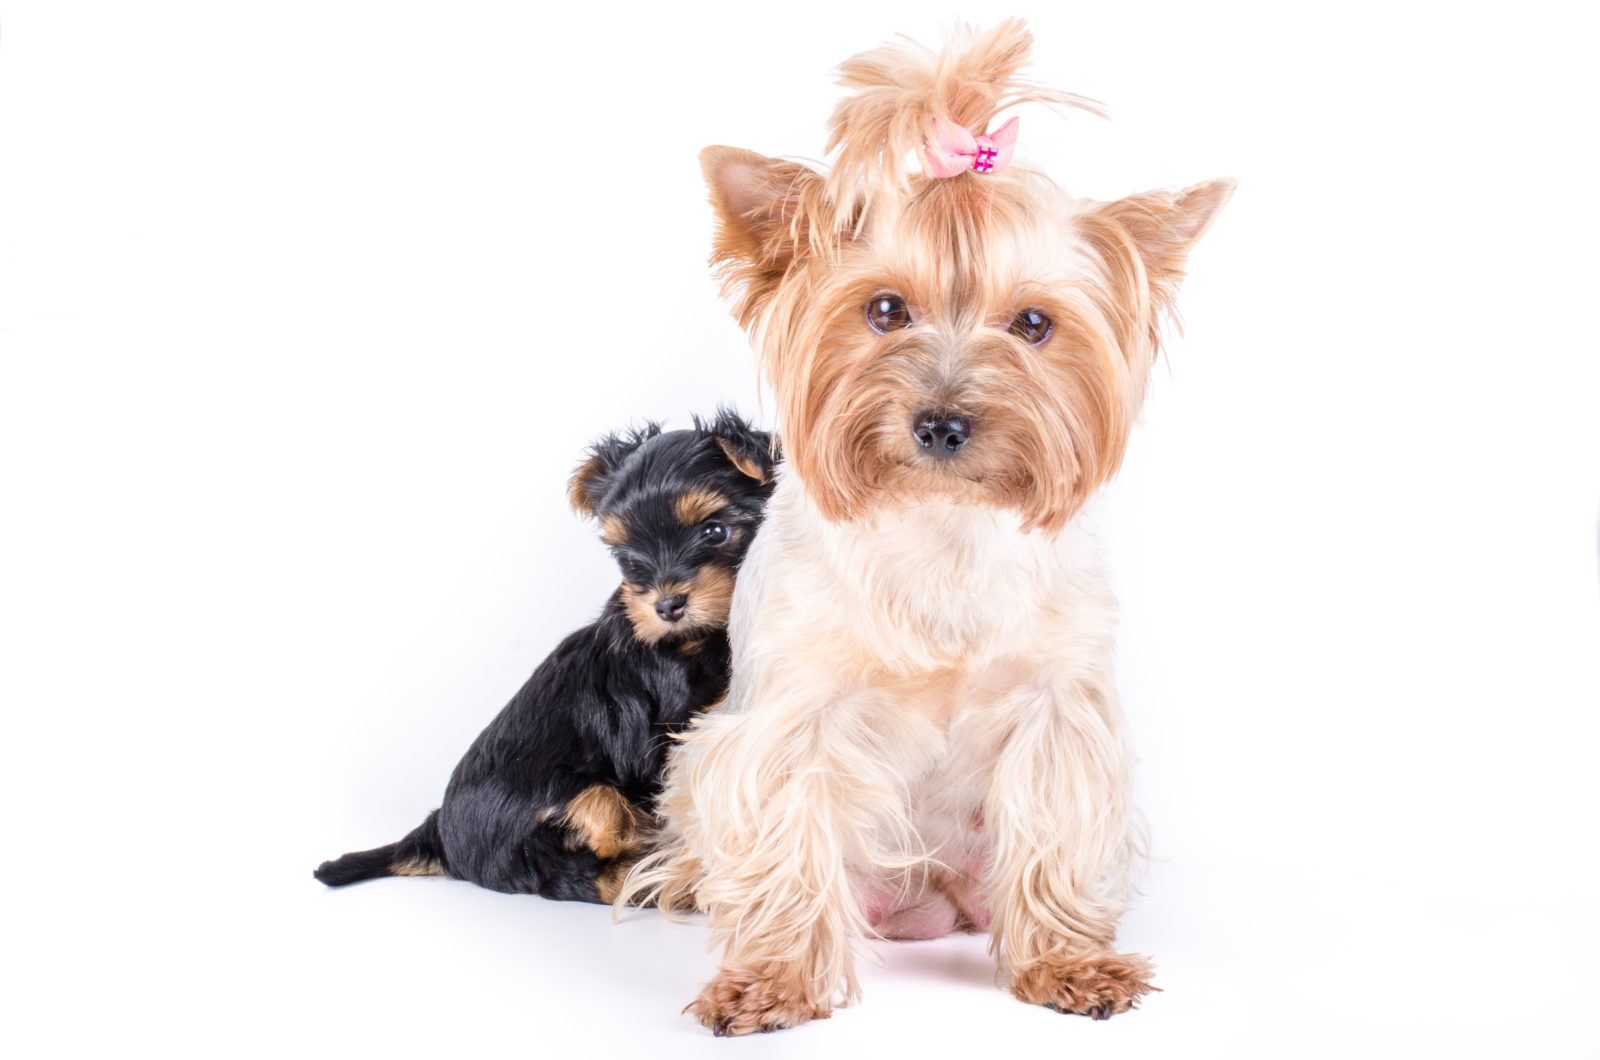 Yorkshire terrier mom and pup, 2 months old.